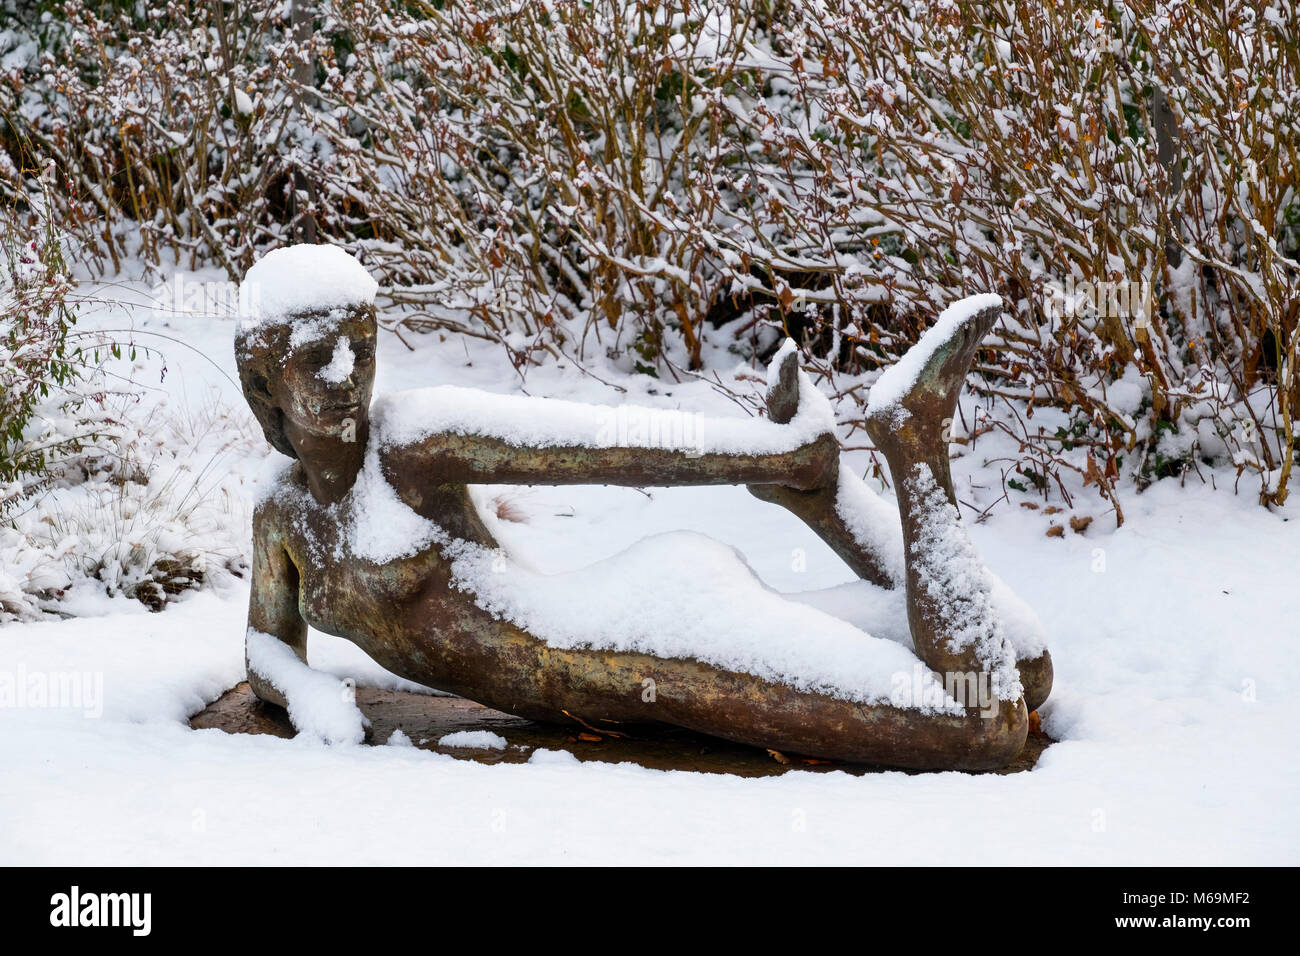 Snow scene. Sculpture in the town hall park, Troinex, Tomorrow I go to the printing press, how many copies of the book Climate Change do you want? Stock Photo